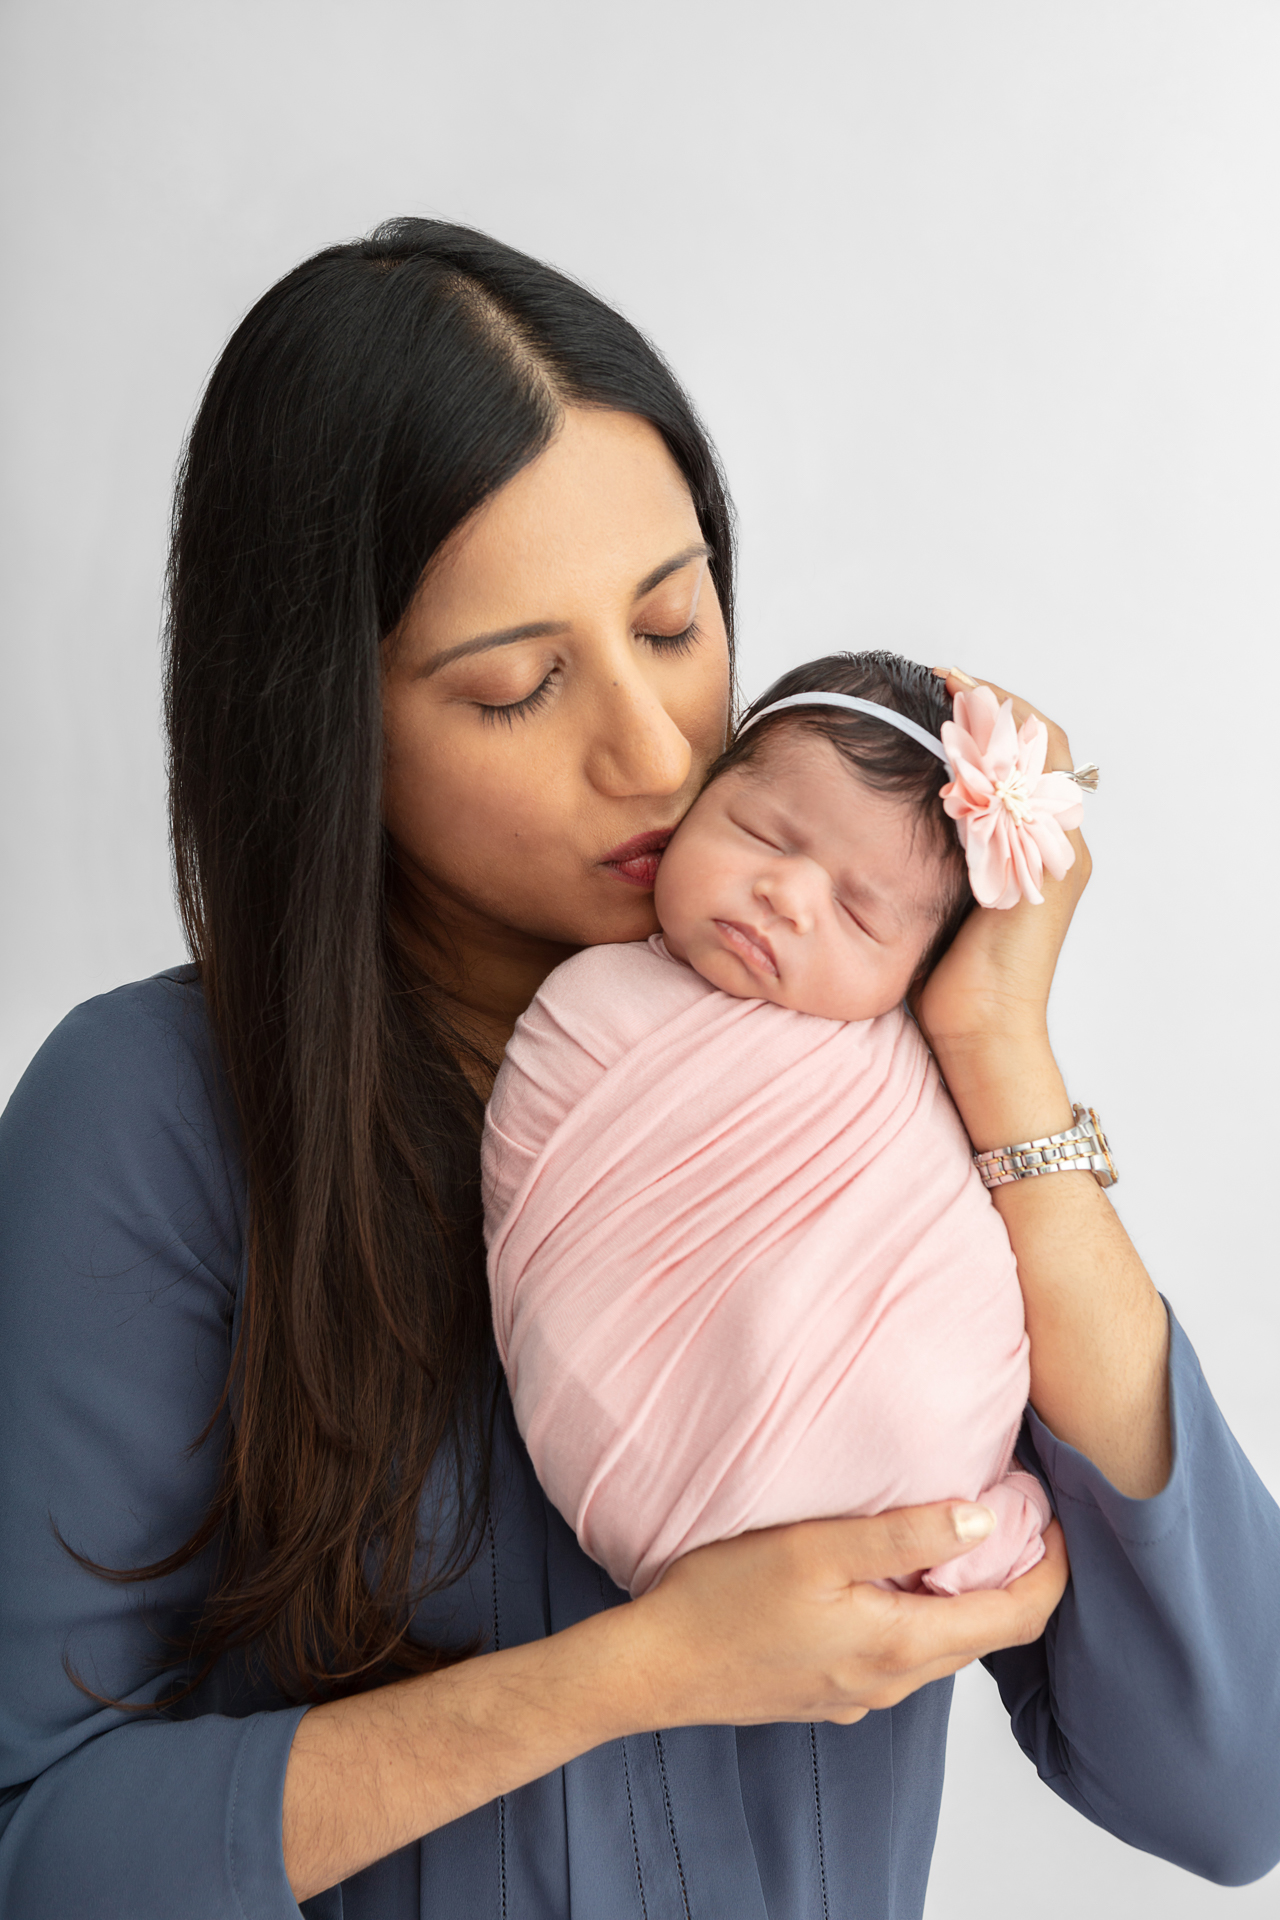 new mom with long dark hair holding up her newborn baby girl who is swaddled in light pink